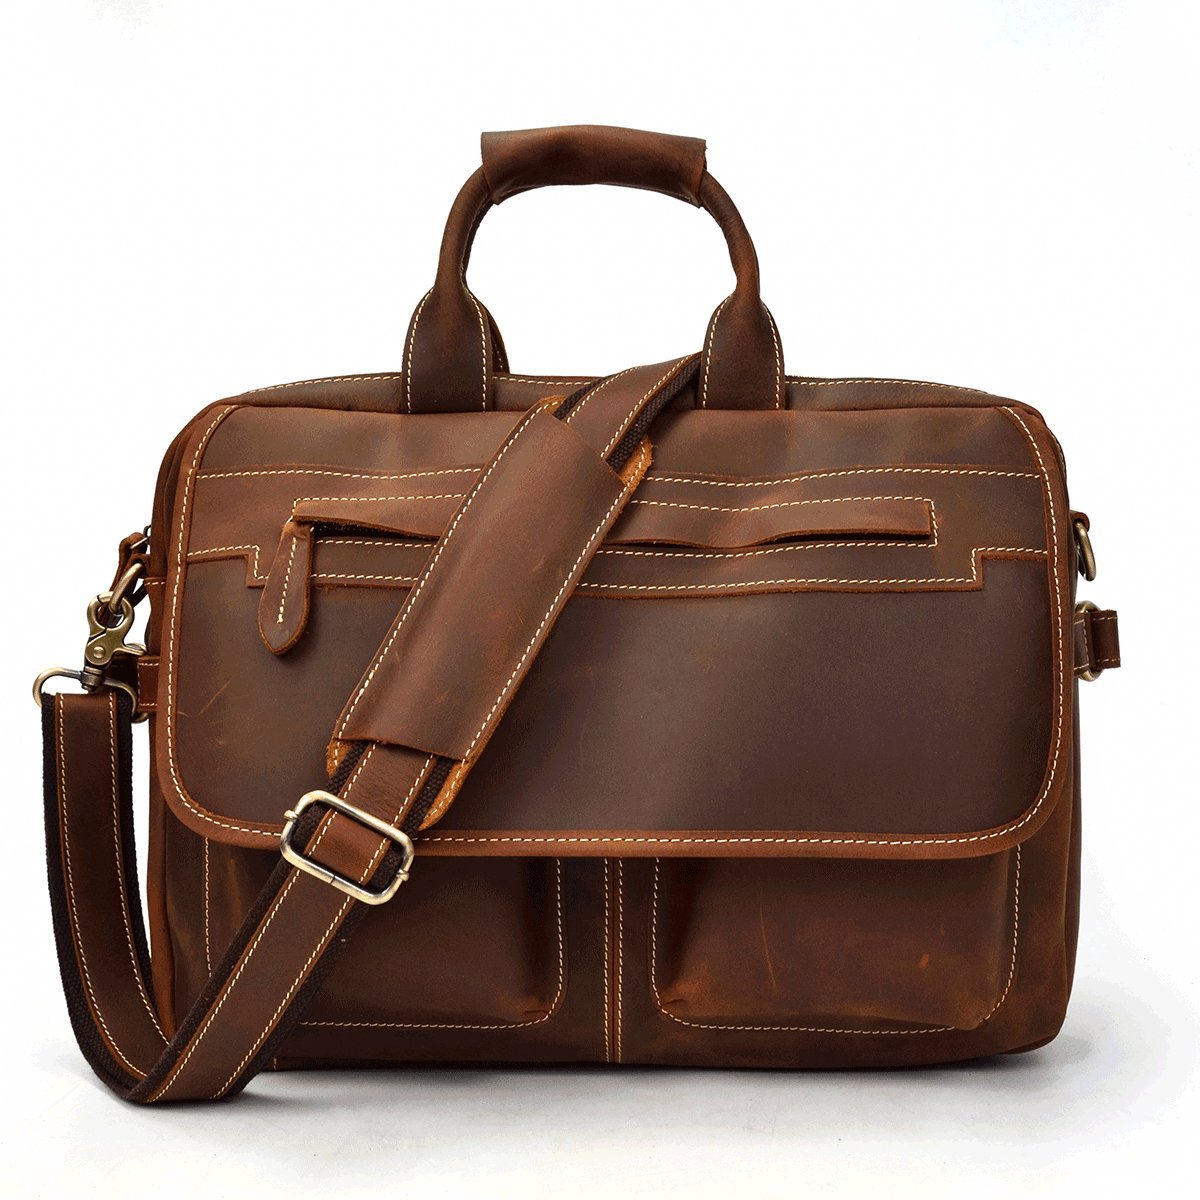 Business Work Bag, Men's Genuine Leather Laptop Briefcase Brown High-Capacity A4 Top Grain Cowhide Leather Shoulder Messenger Bag (Light Brown) by Luufan